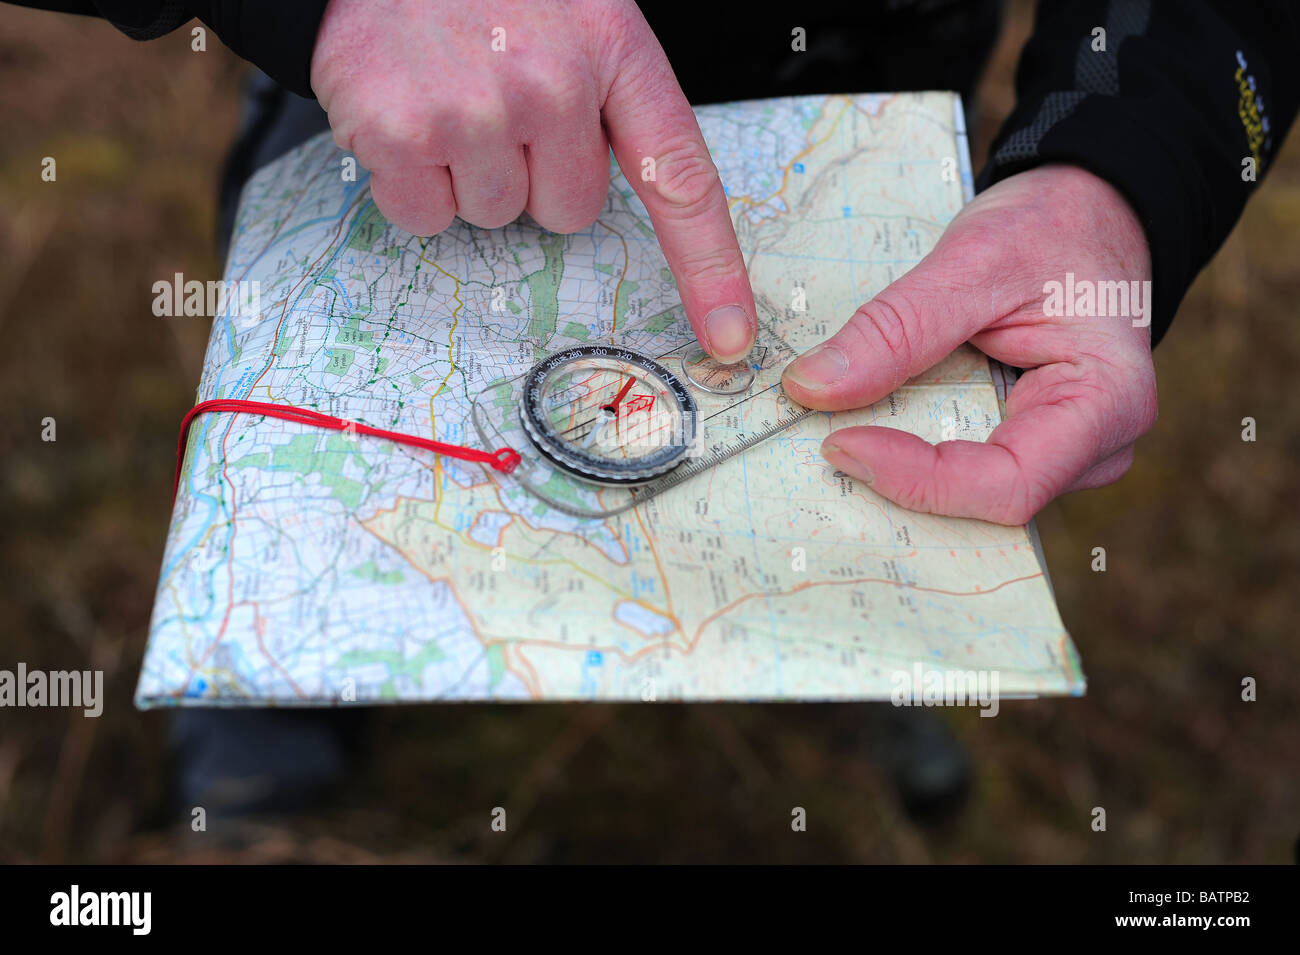 A mans hands holding a map and compass for orienteering and